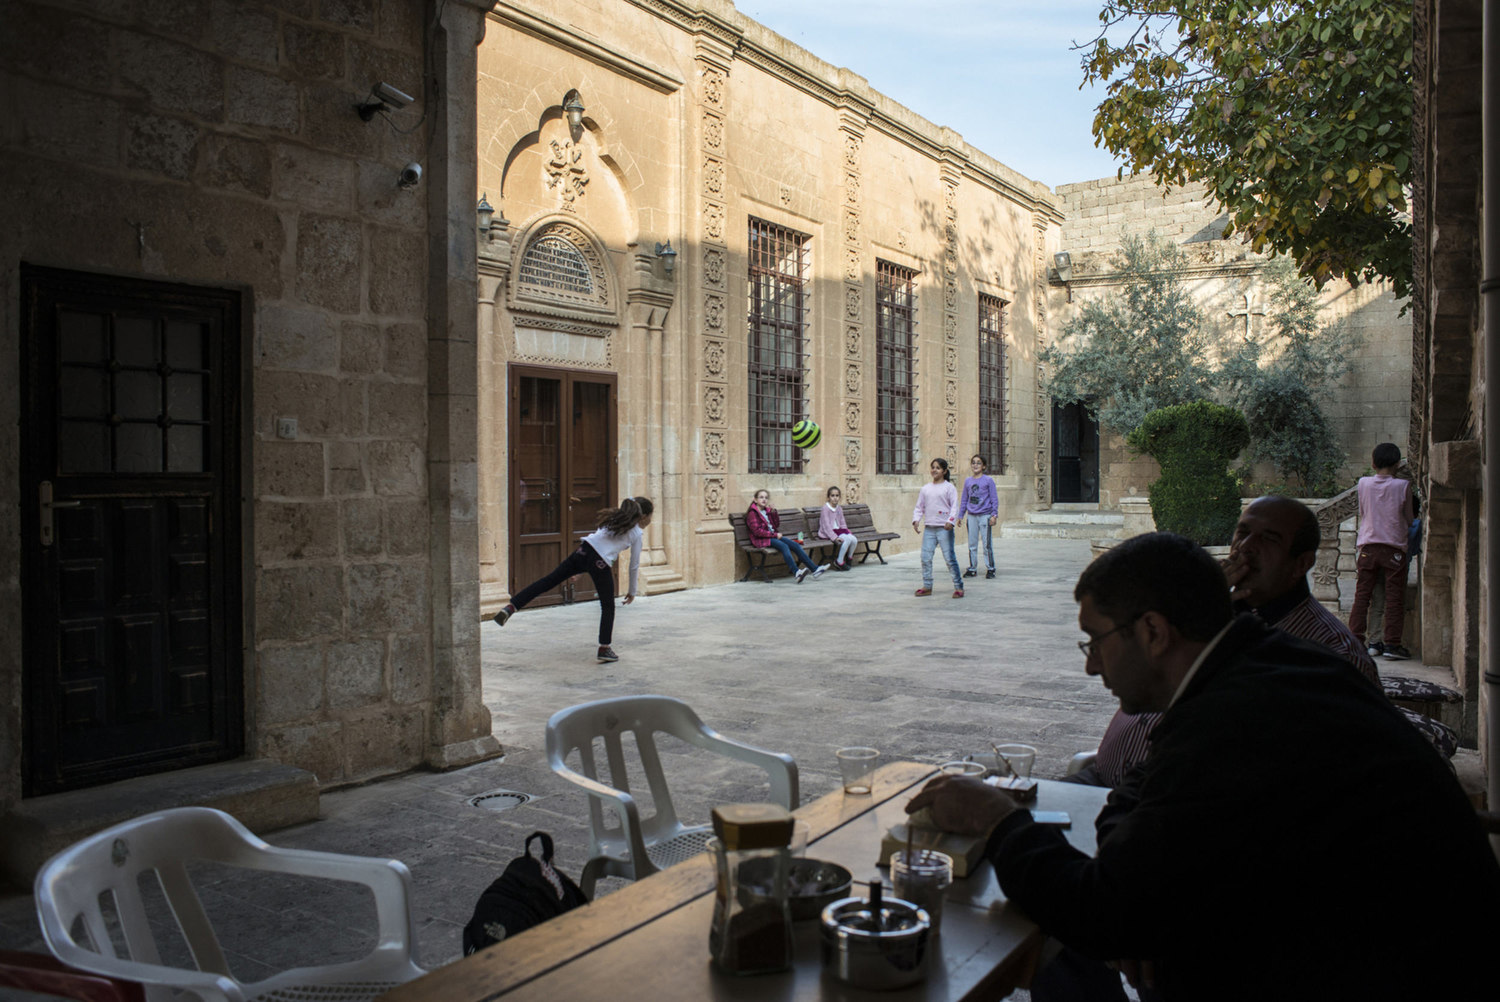 Decon Ayhan Gürkan,(l) reads from a religious book in the courtyard of Mor Barsaumo before teaching an Aramaic lesson on October 30th, 2014.